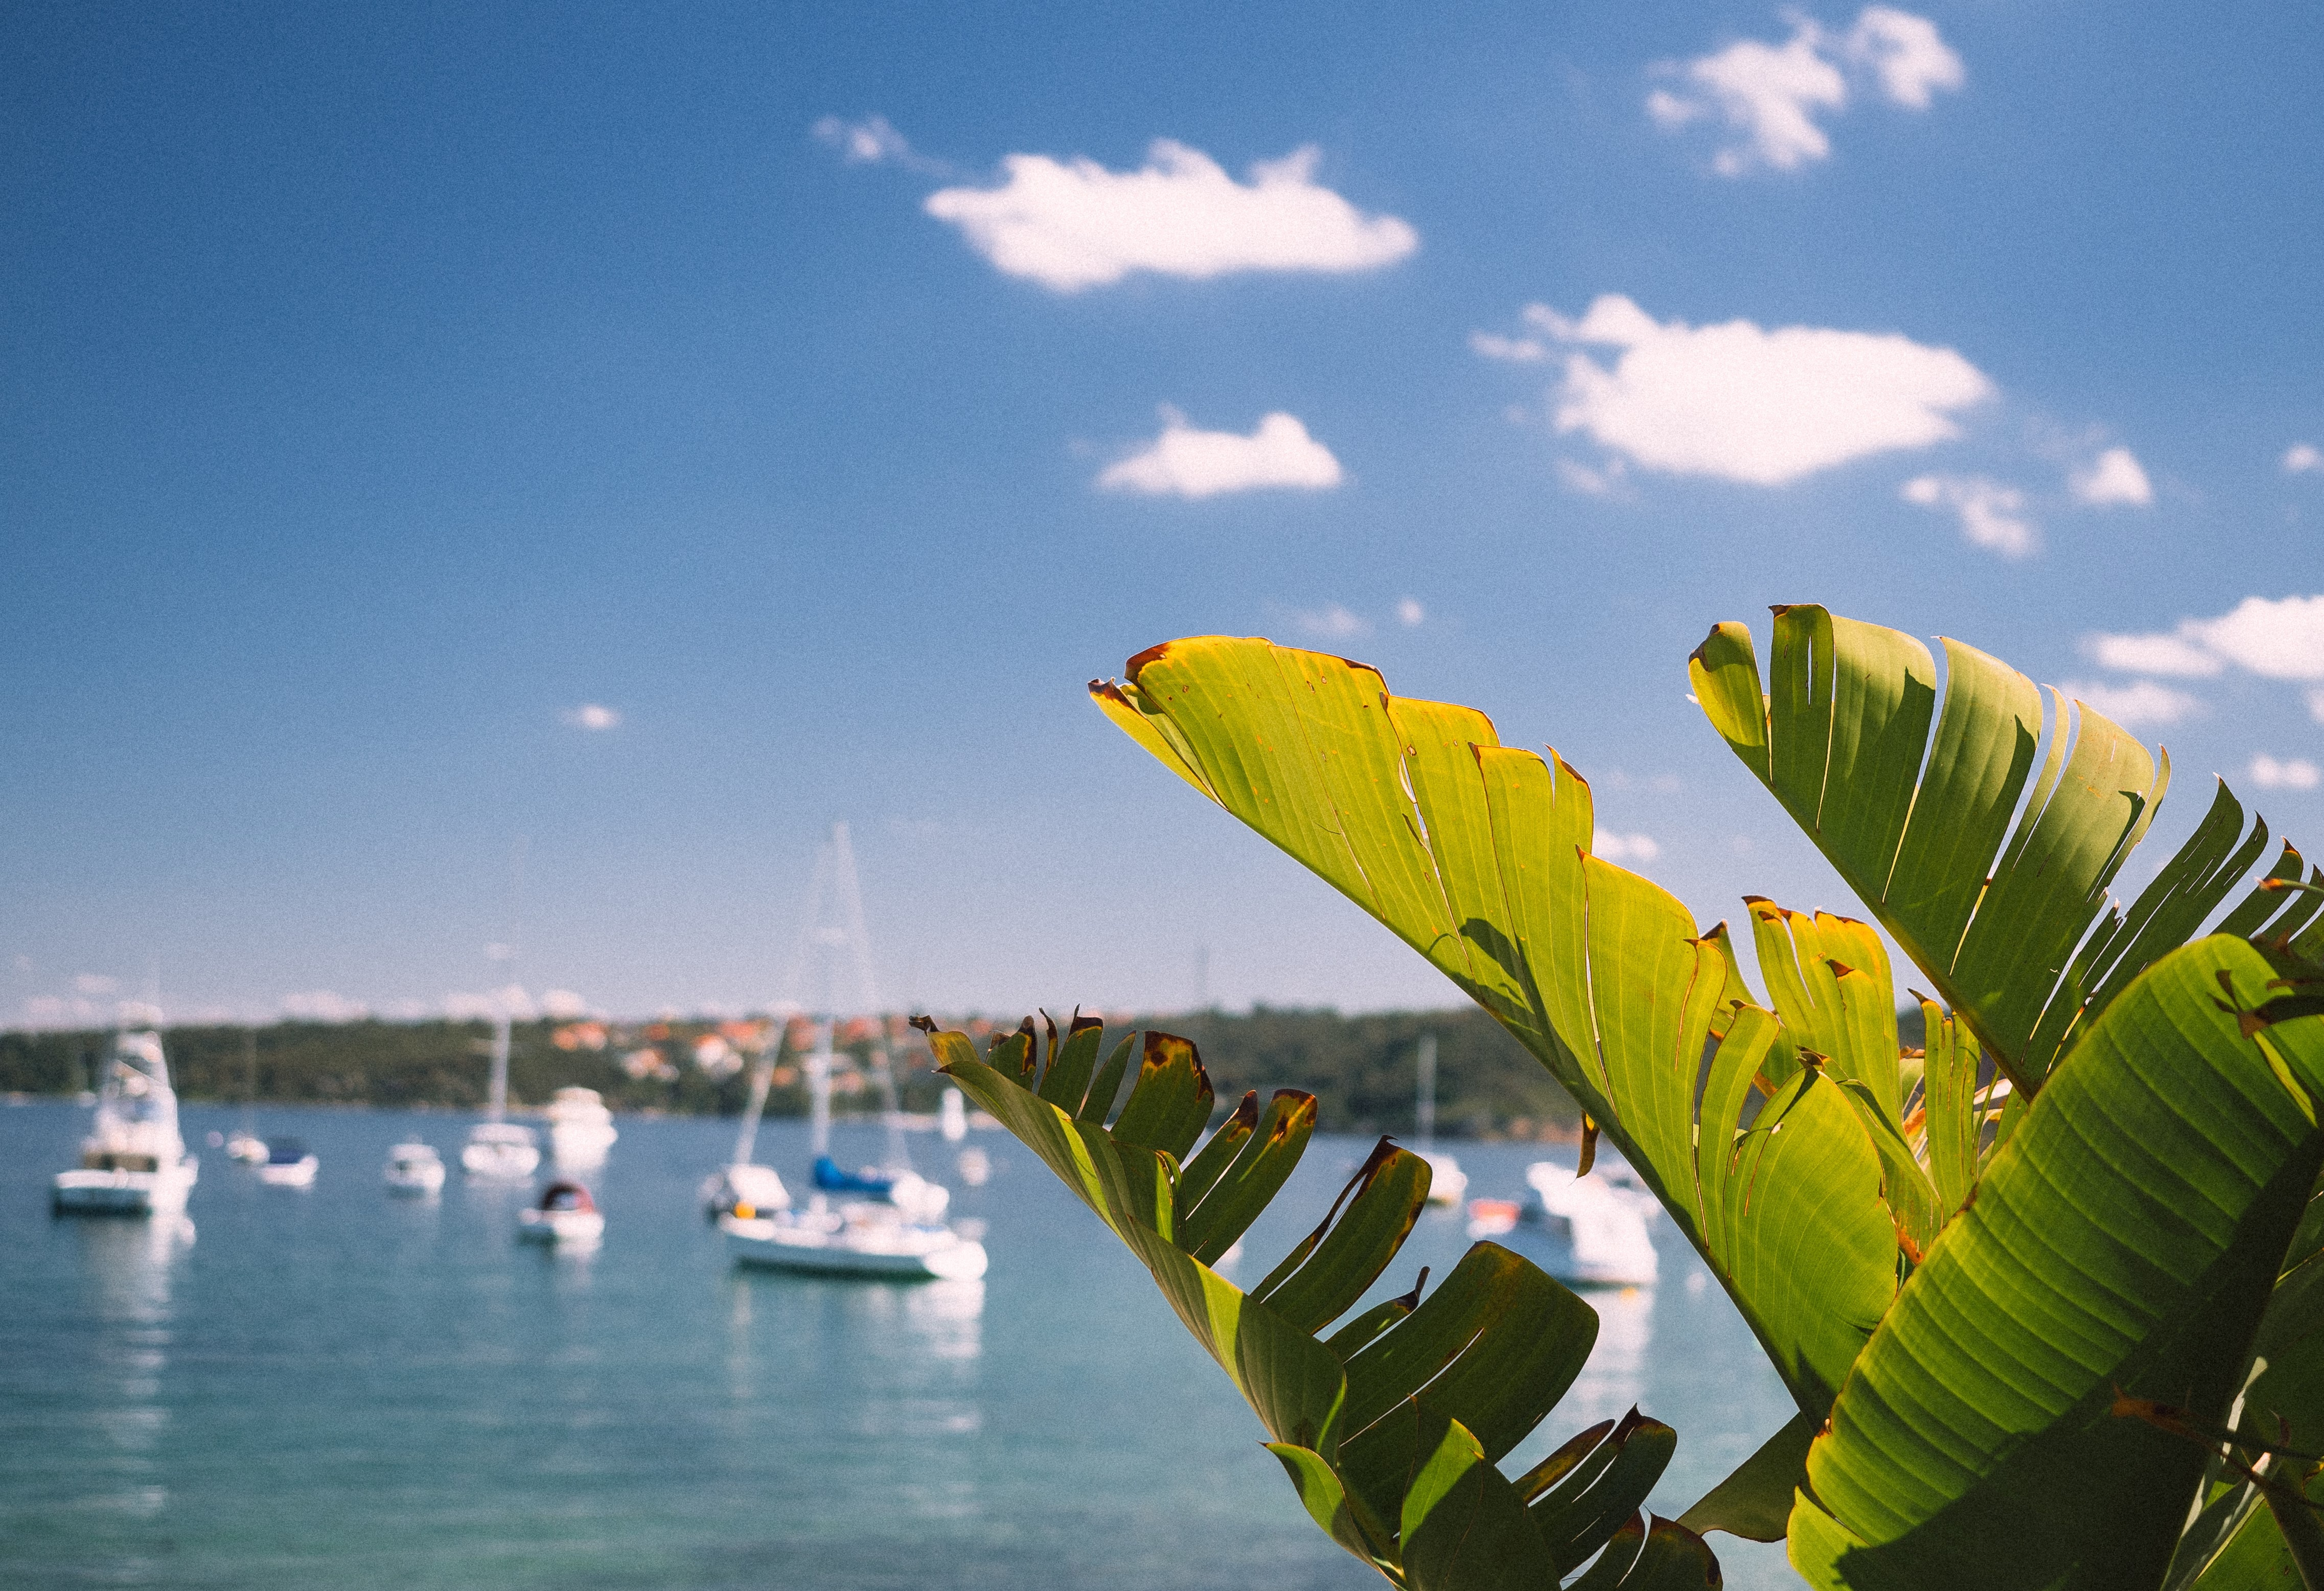 green palm plant beside boats on blue sea under white cloudy sky during daytime